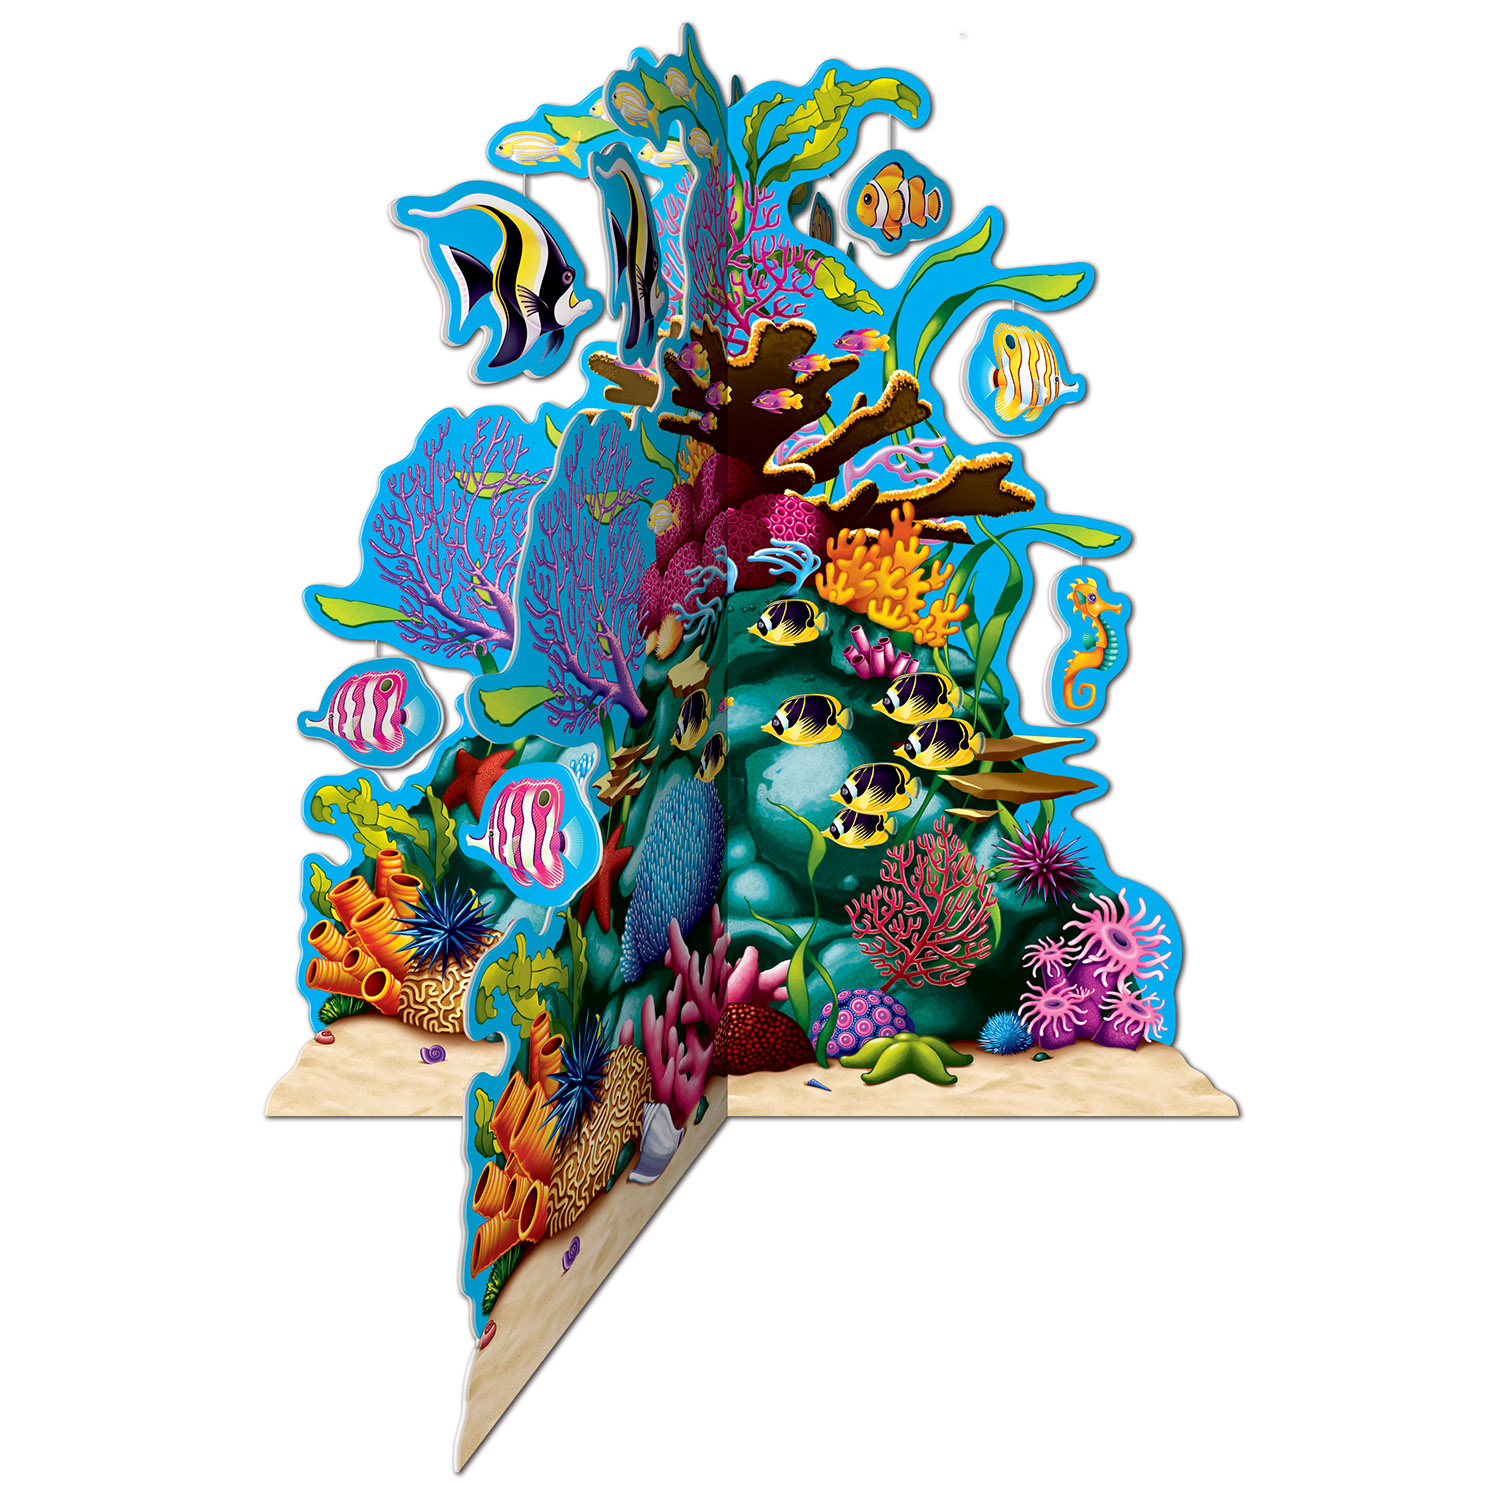 3-D Coral Reef Centerpiece (Pack of 12) 3-D Coral Reef Centerpiece, decoration, inexpensive, wholesale, bulk, ocean, luau, new years eve